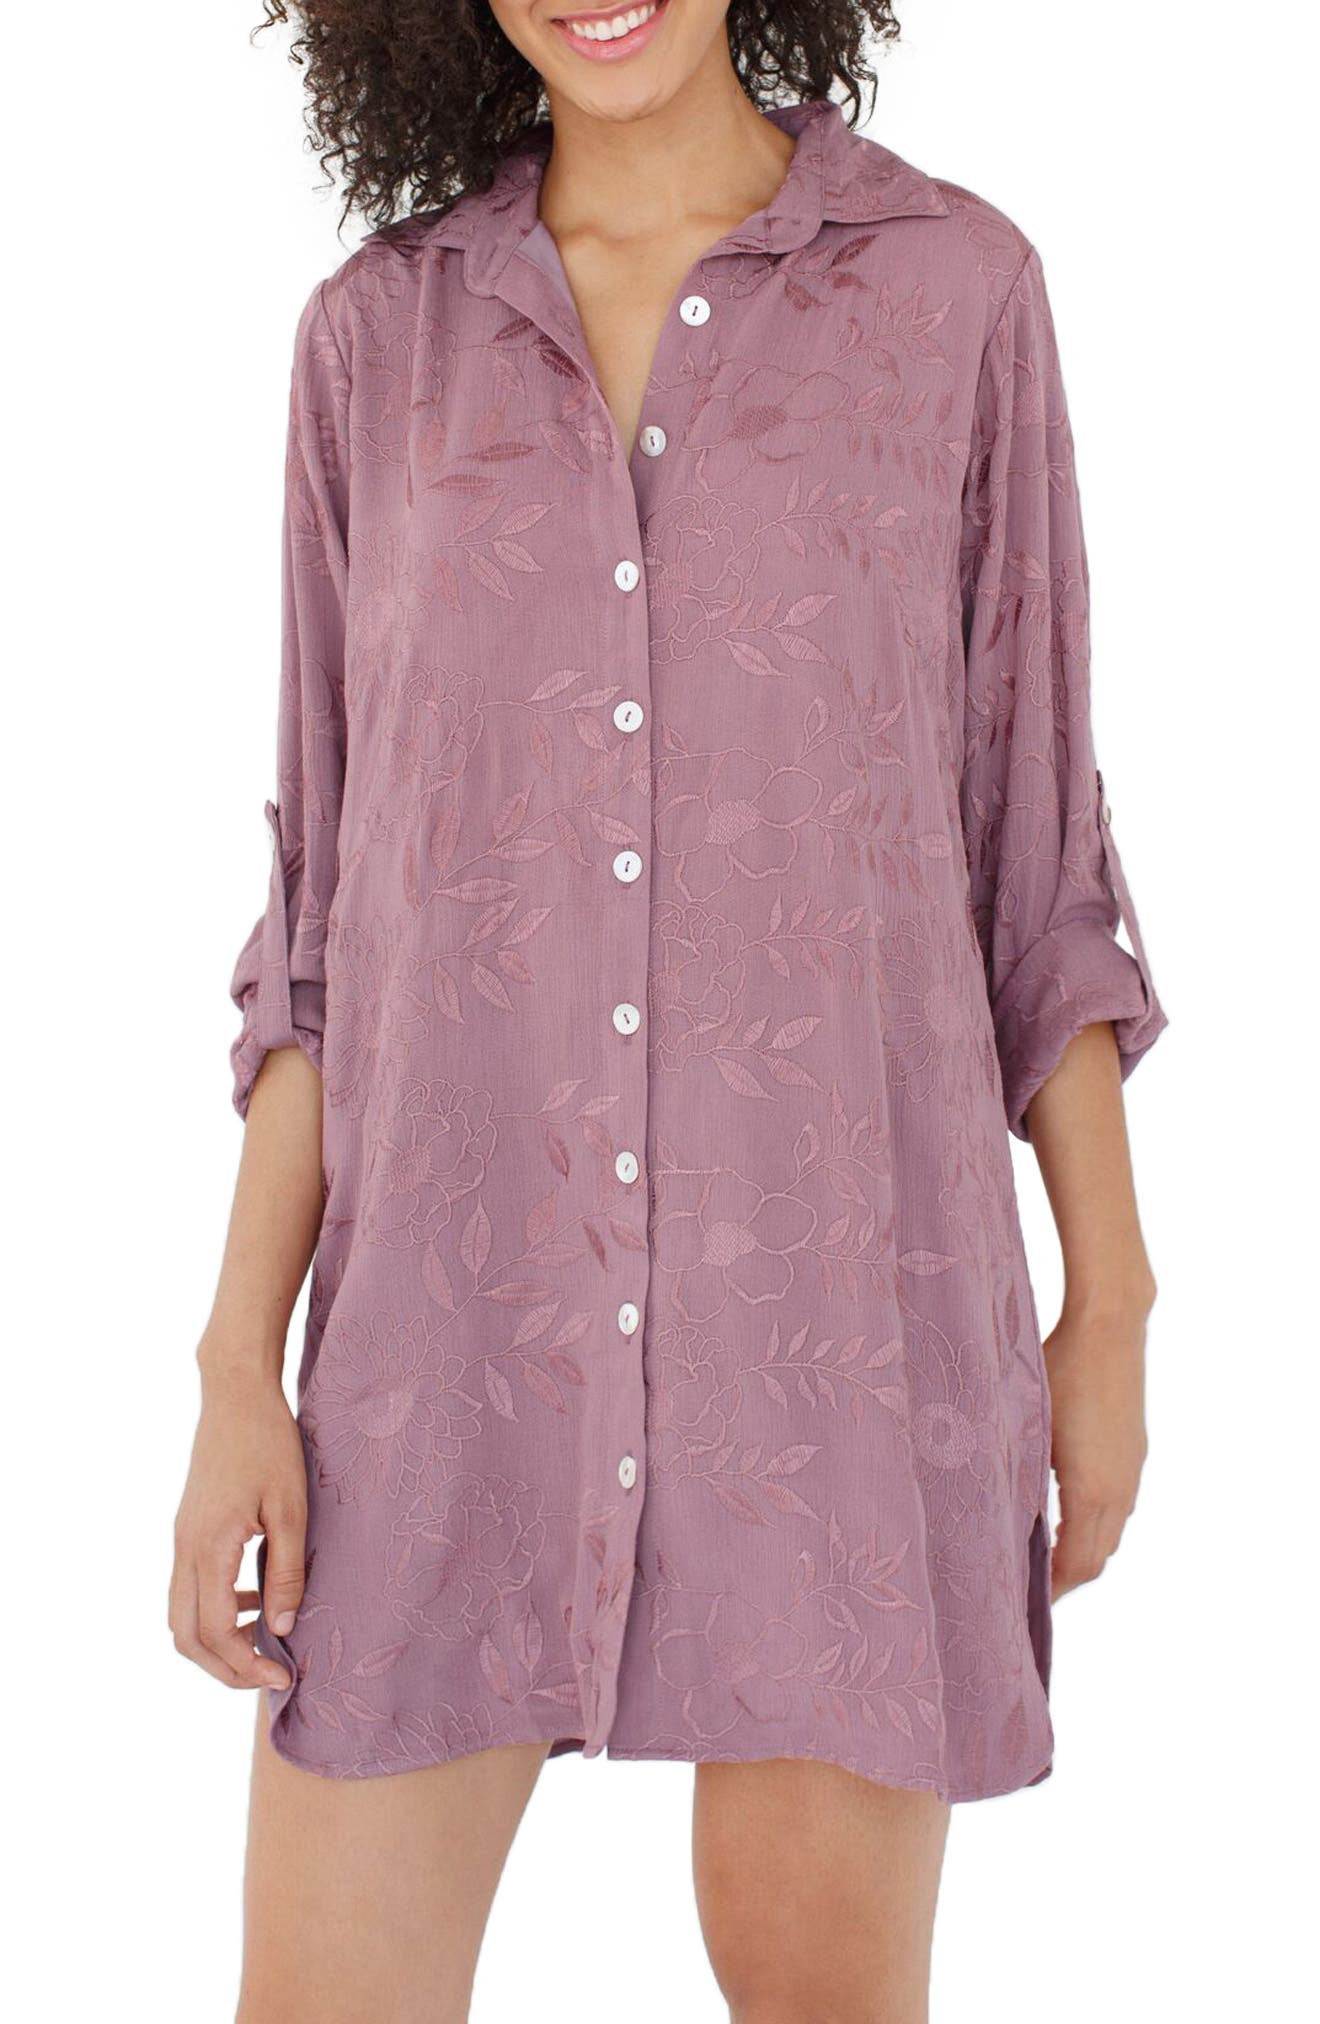 Floral Embroidered Nightshirt,                             Main thumbnail 1, color,                             Love In Her Heart